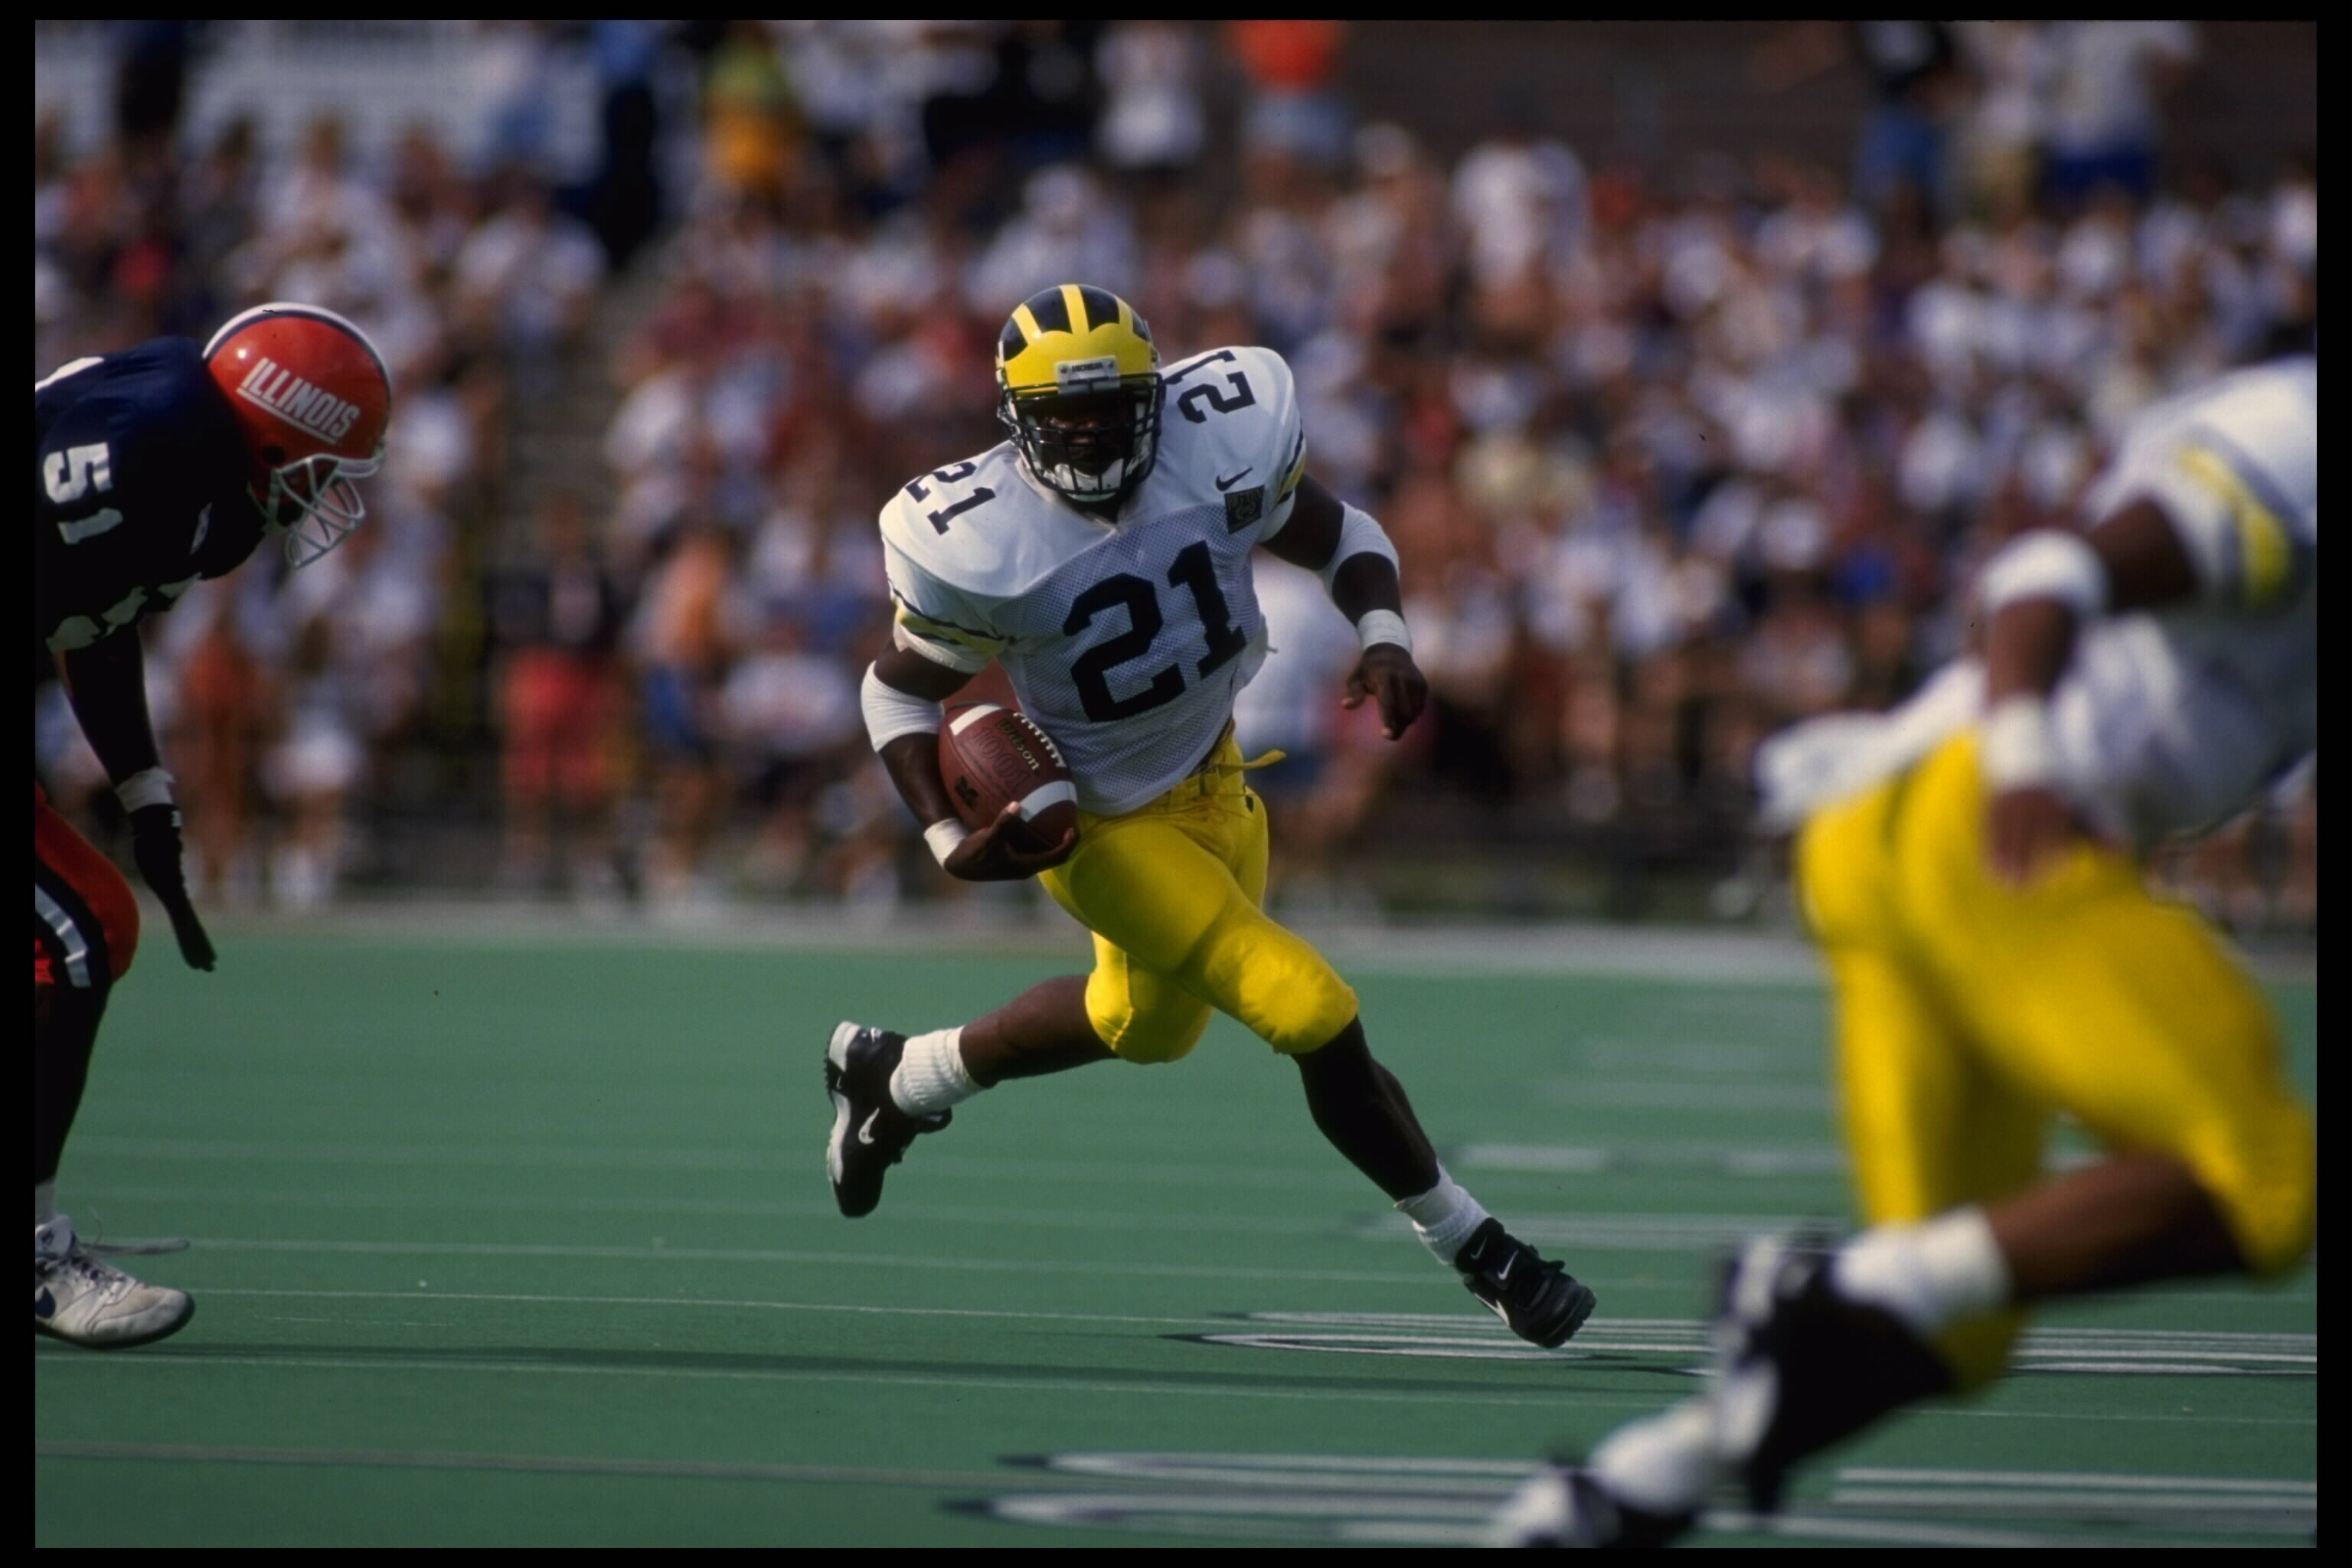 Tim Biakabutuka ran for 97 yards against Illinois, the same year he crushed OSU for 313